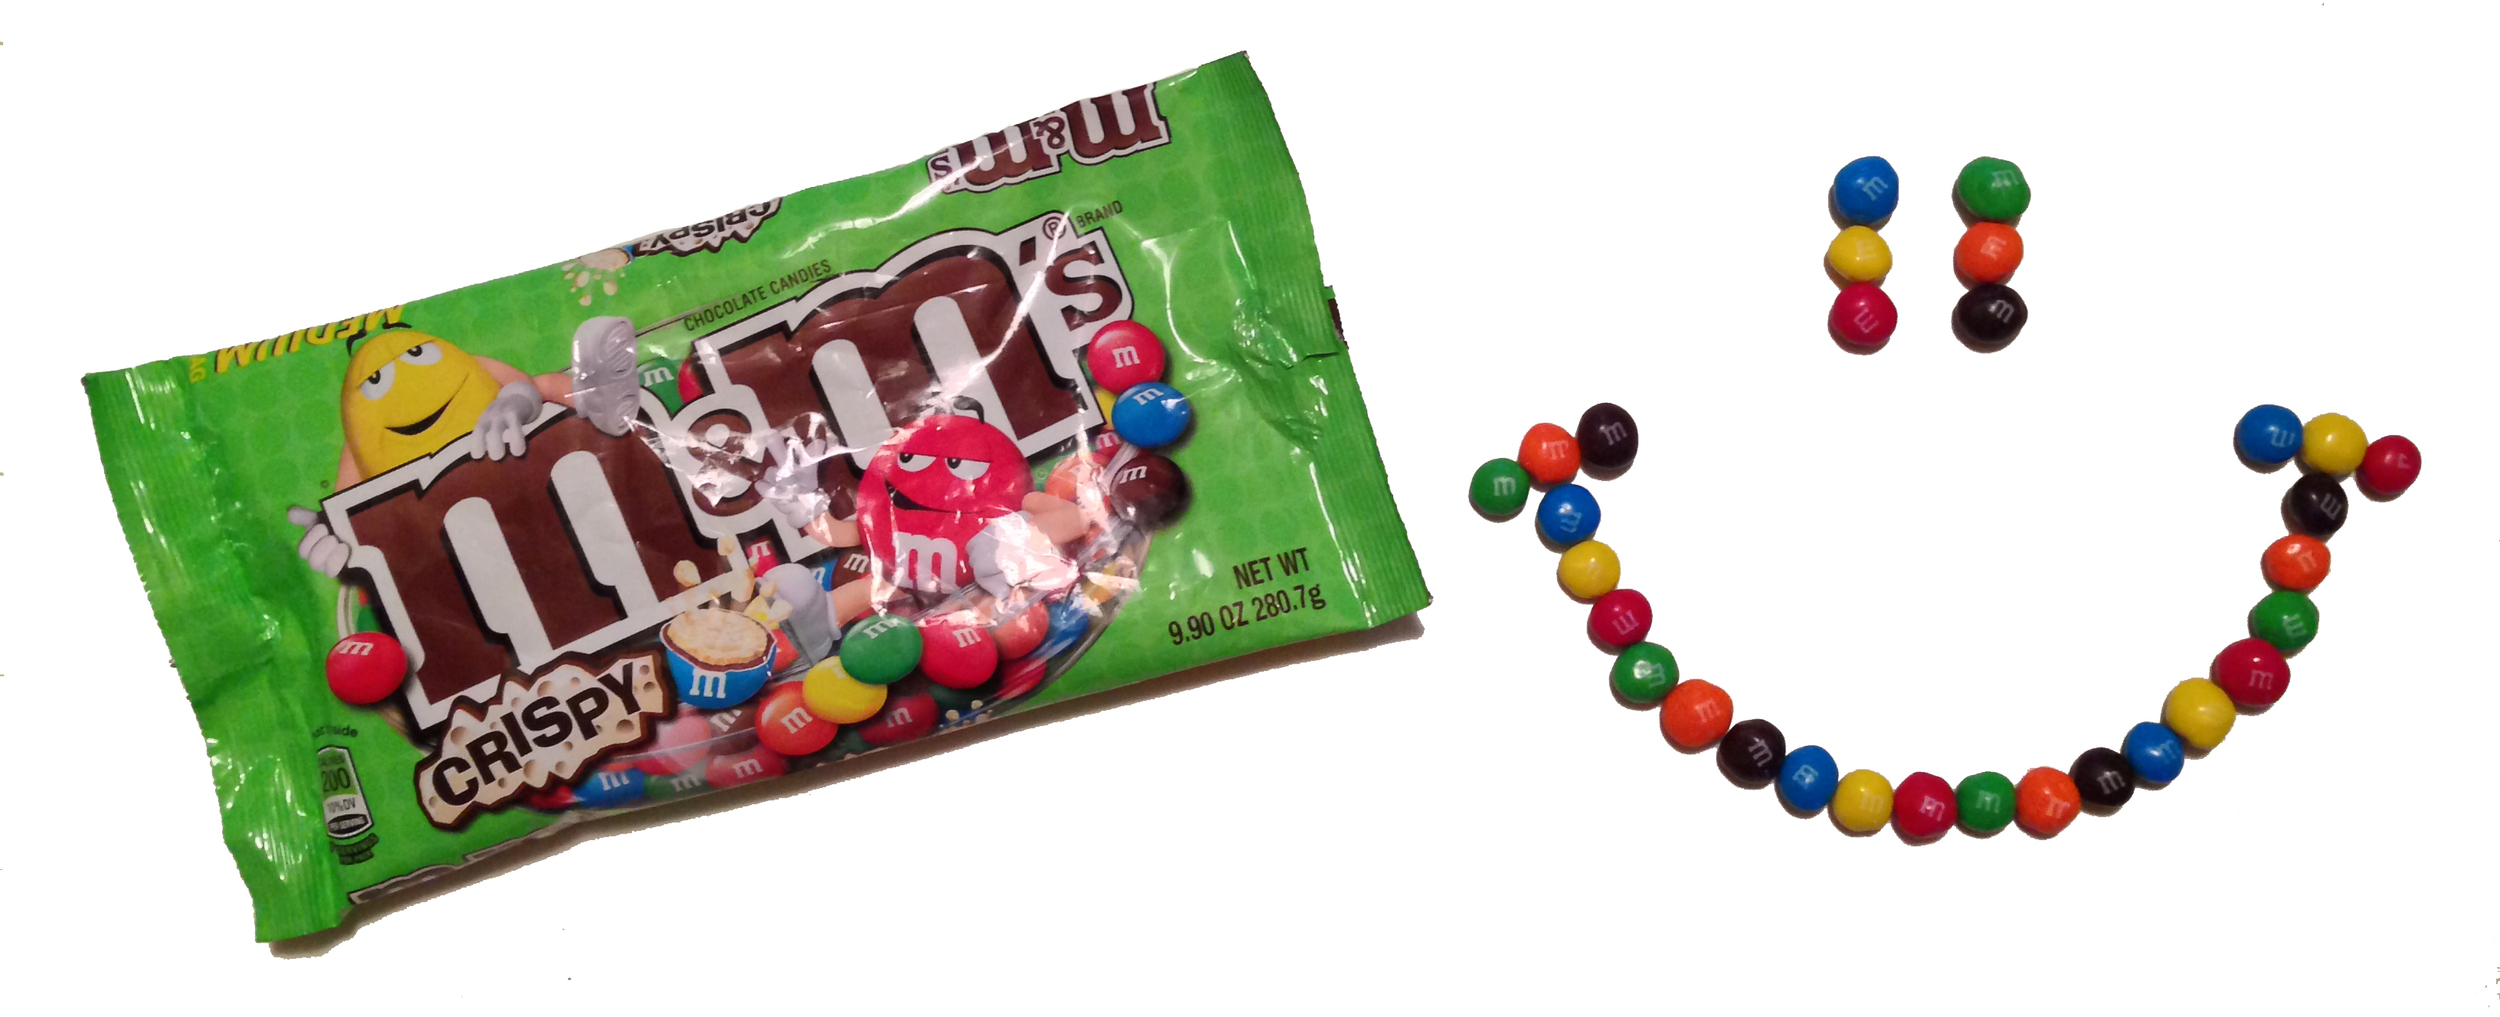 Many m&ms were consumed during the shooting of this photo.